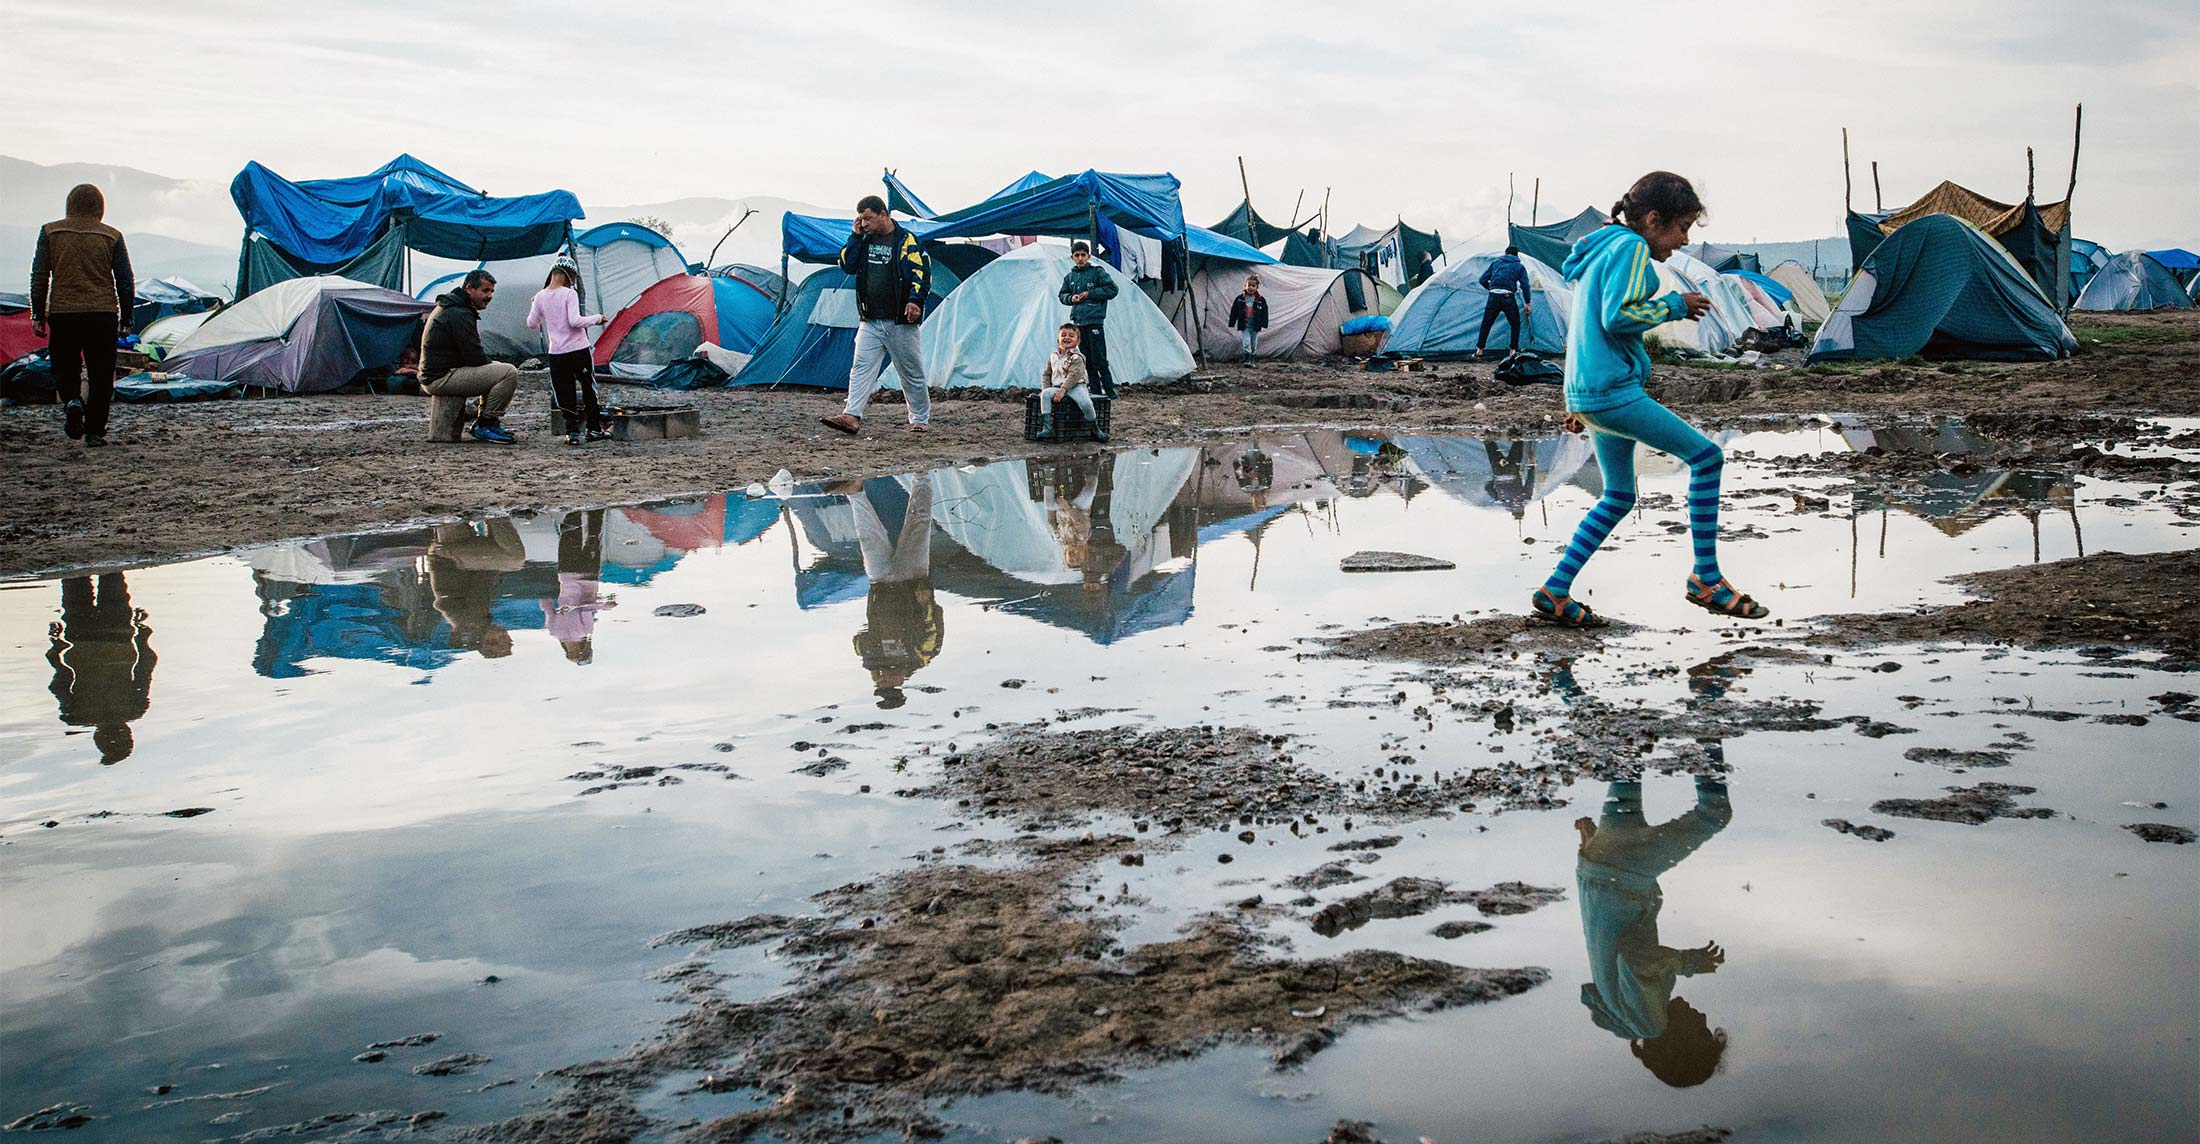 A refugee child jumps through puddles in front of makeshift tents.